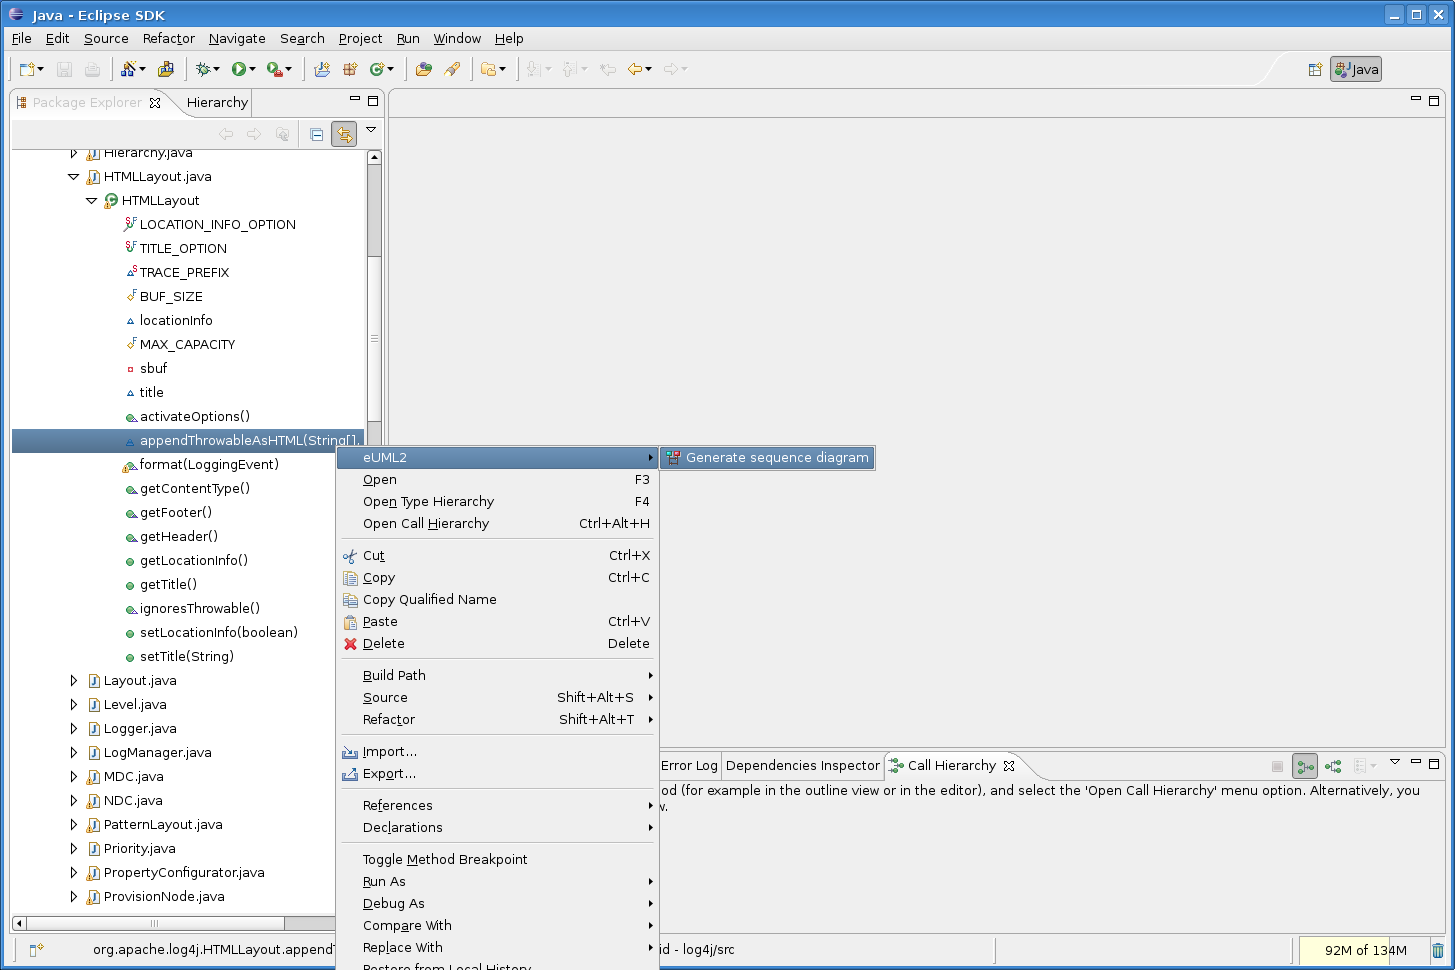 soyatec open solution company xaml for java uml eclipse - Sequence Diagram Free Tool